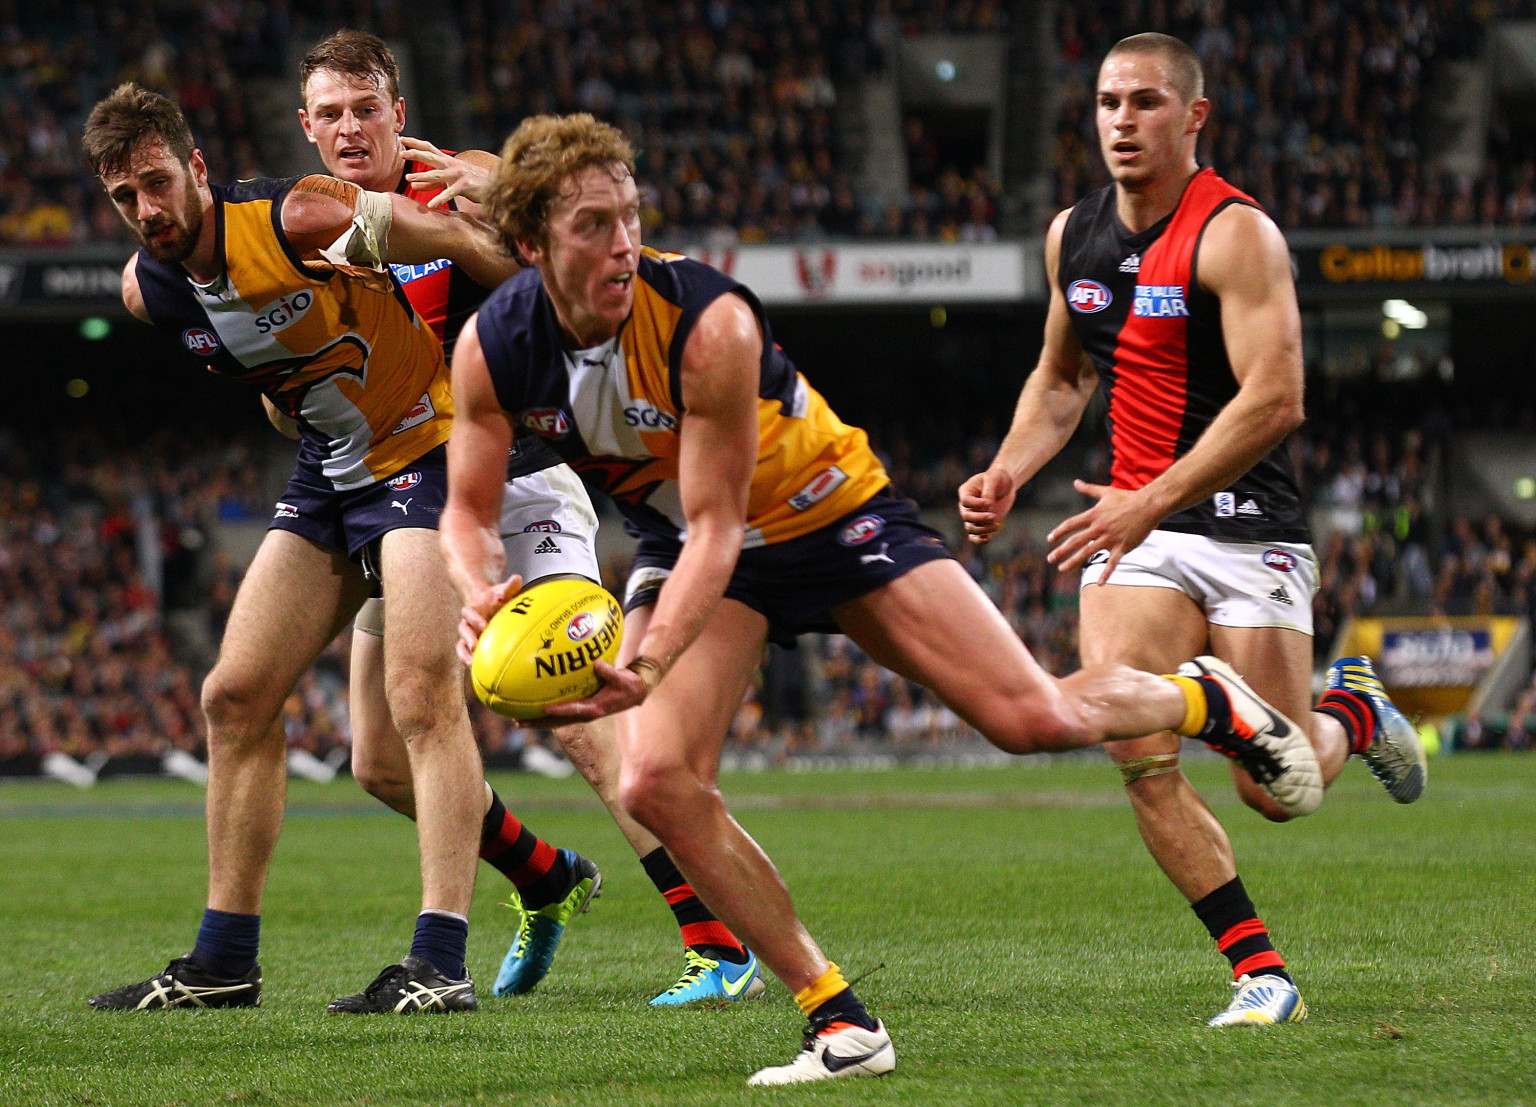 Australian rules football in England